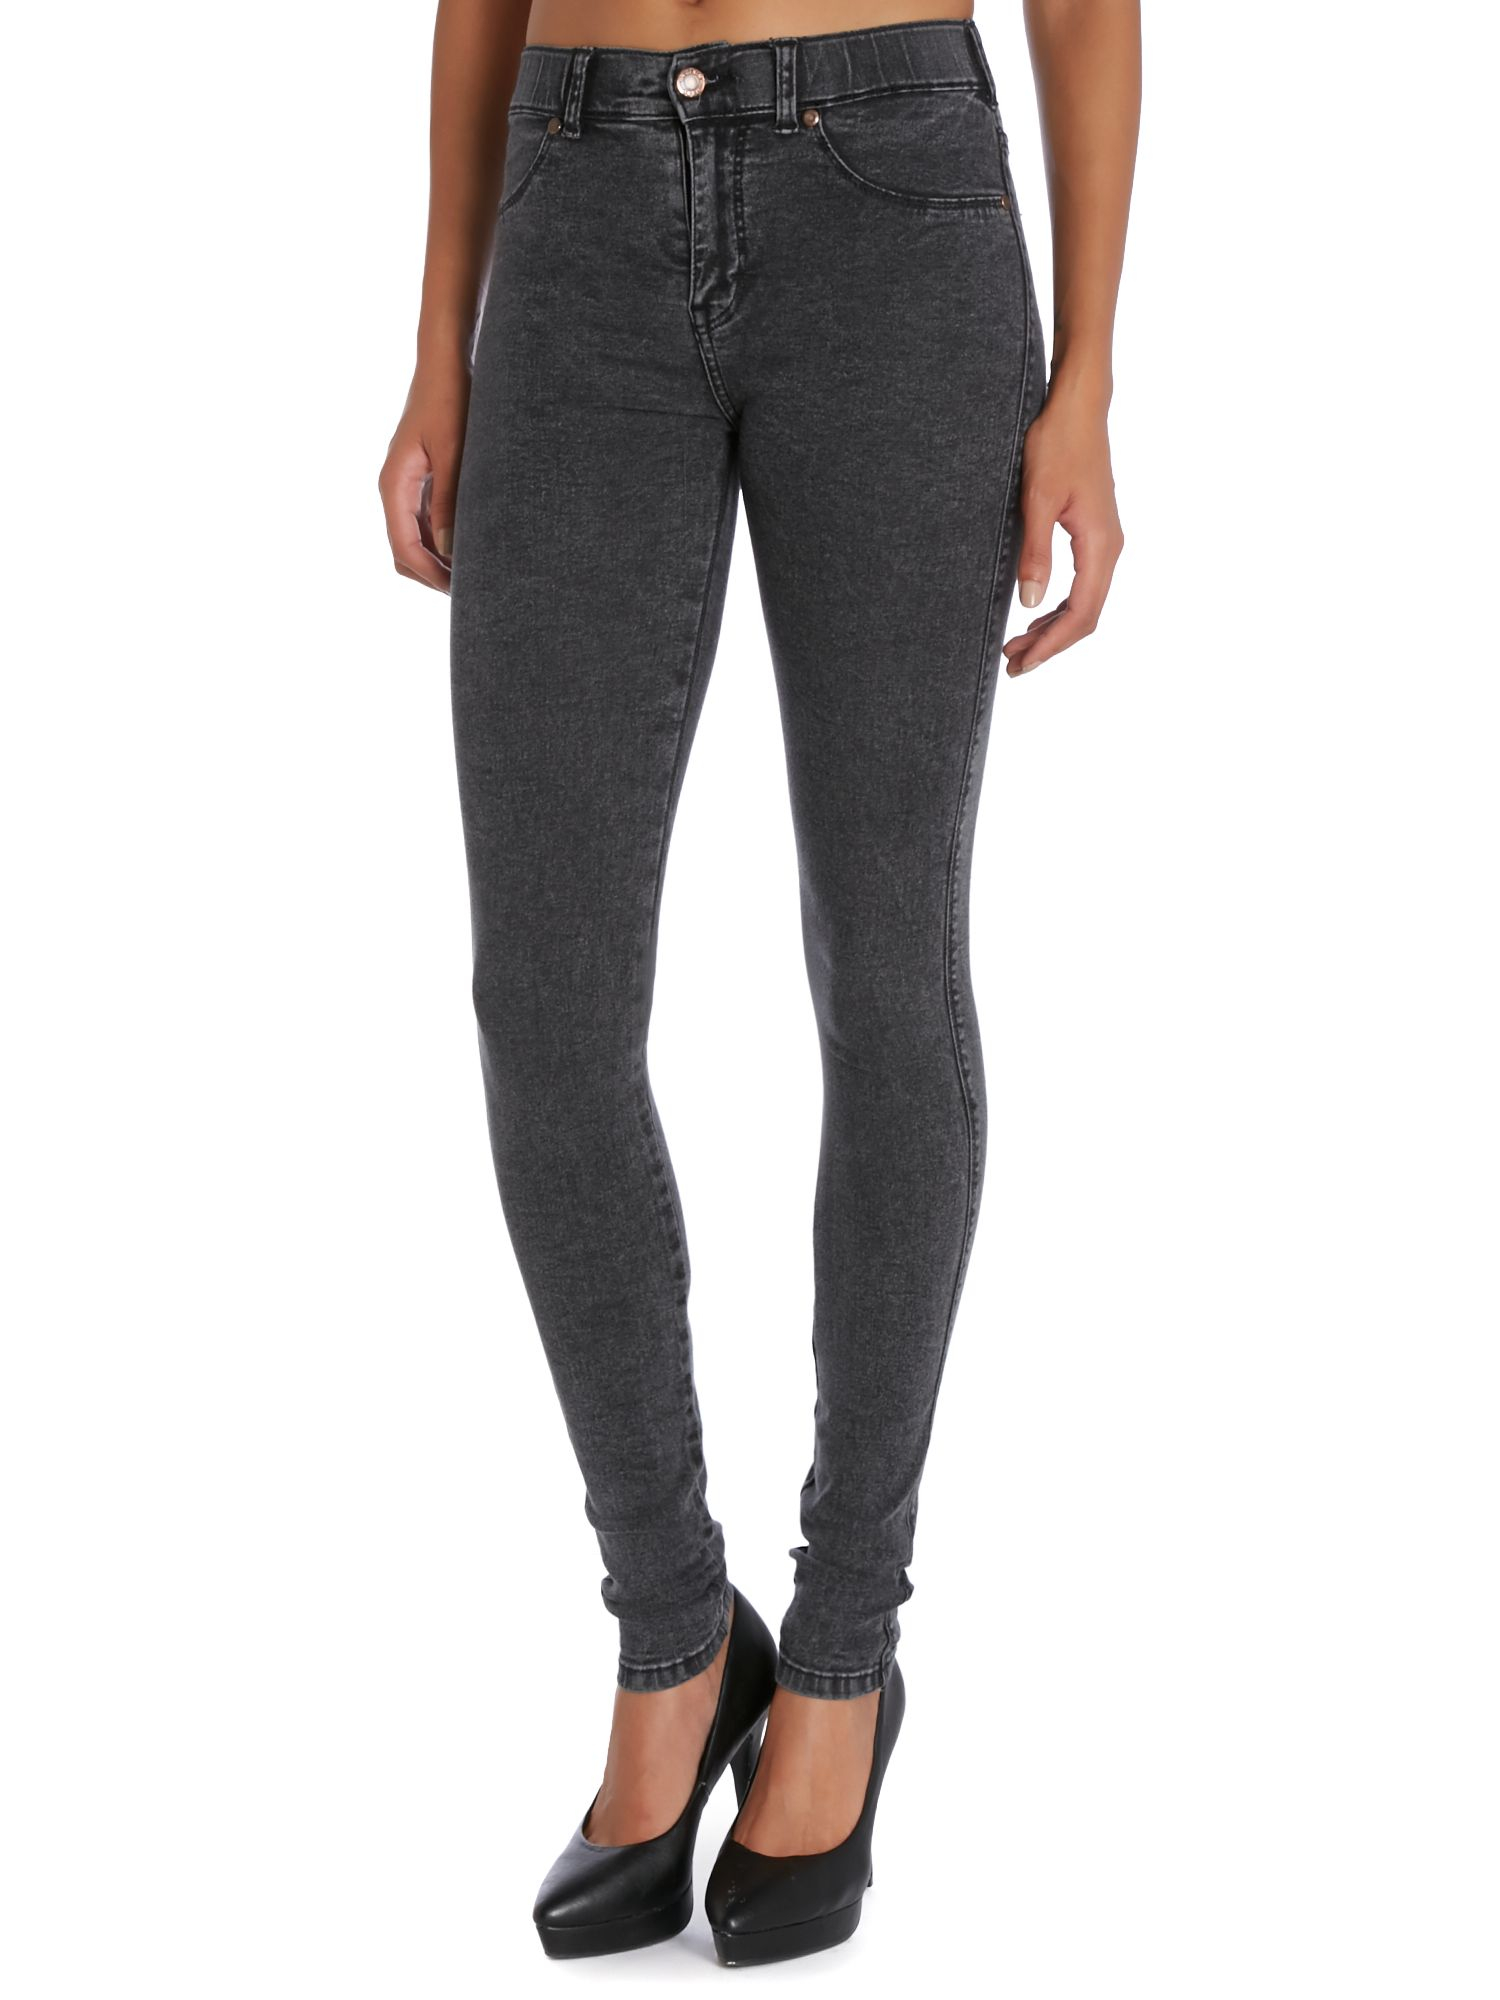 Dr. Denim Denim Plenty High-Rise Skinny Jeans in Black